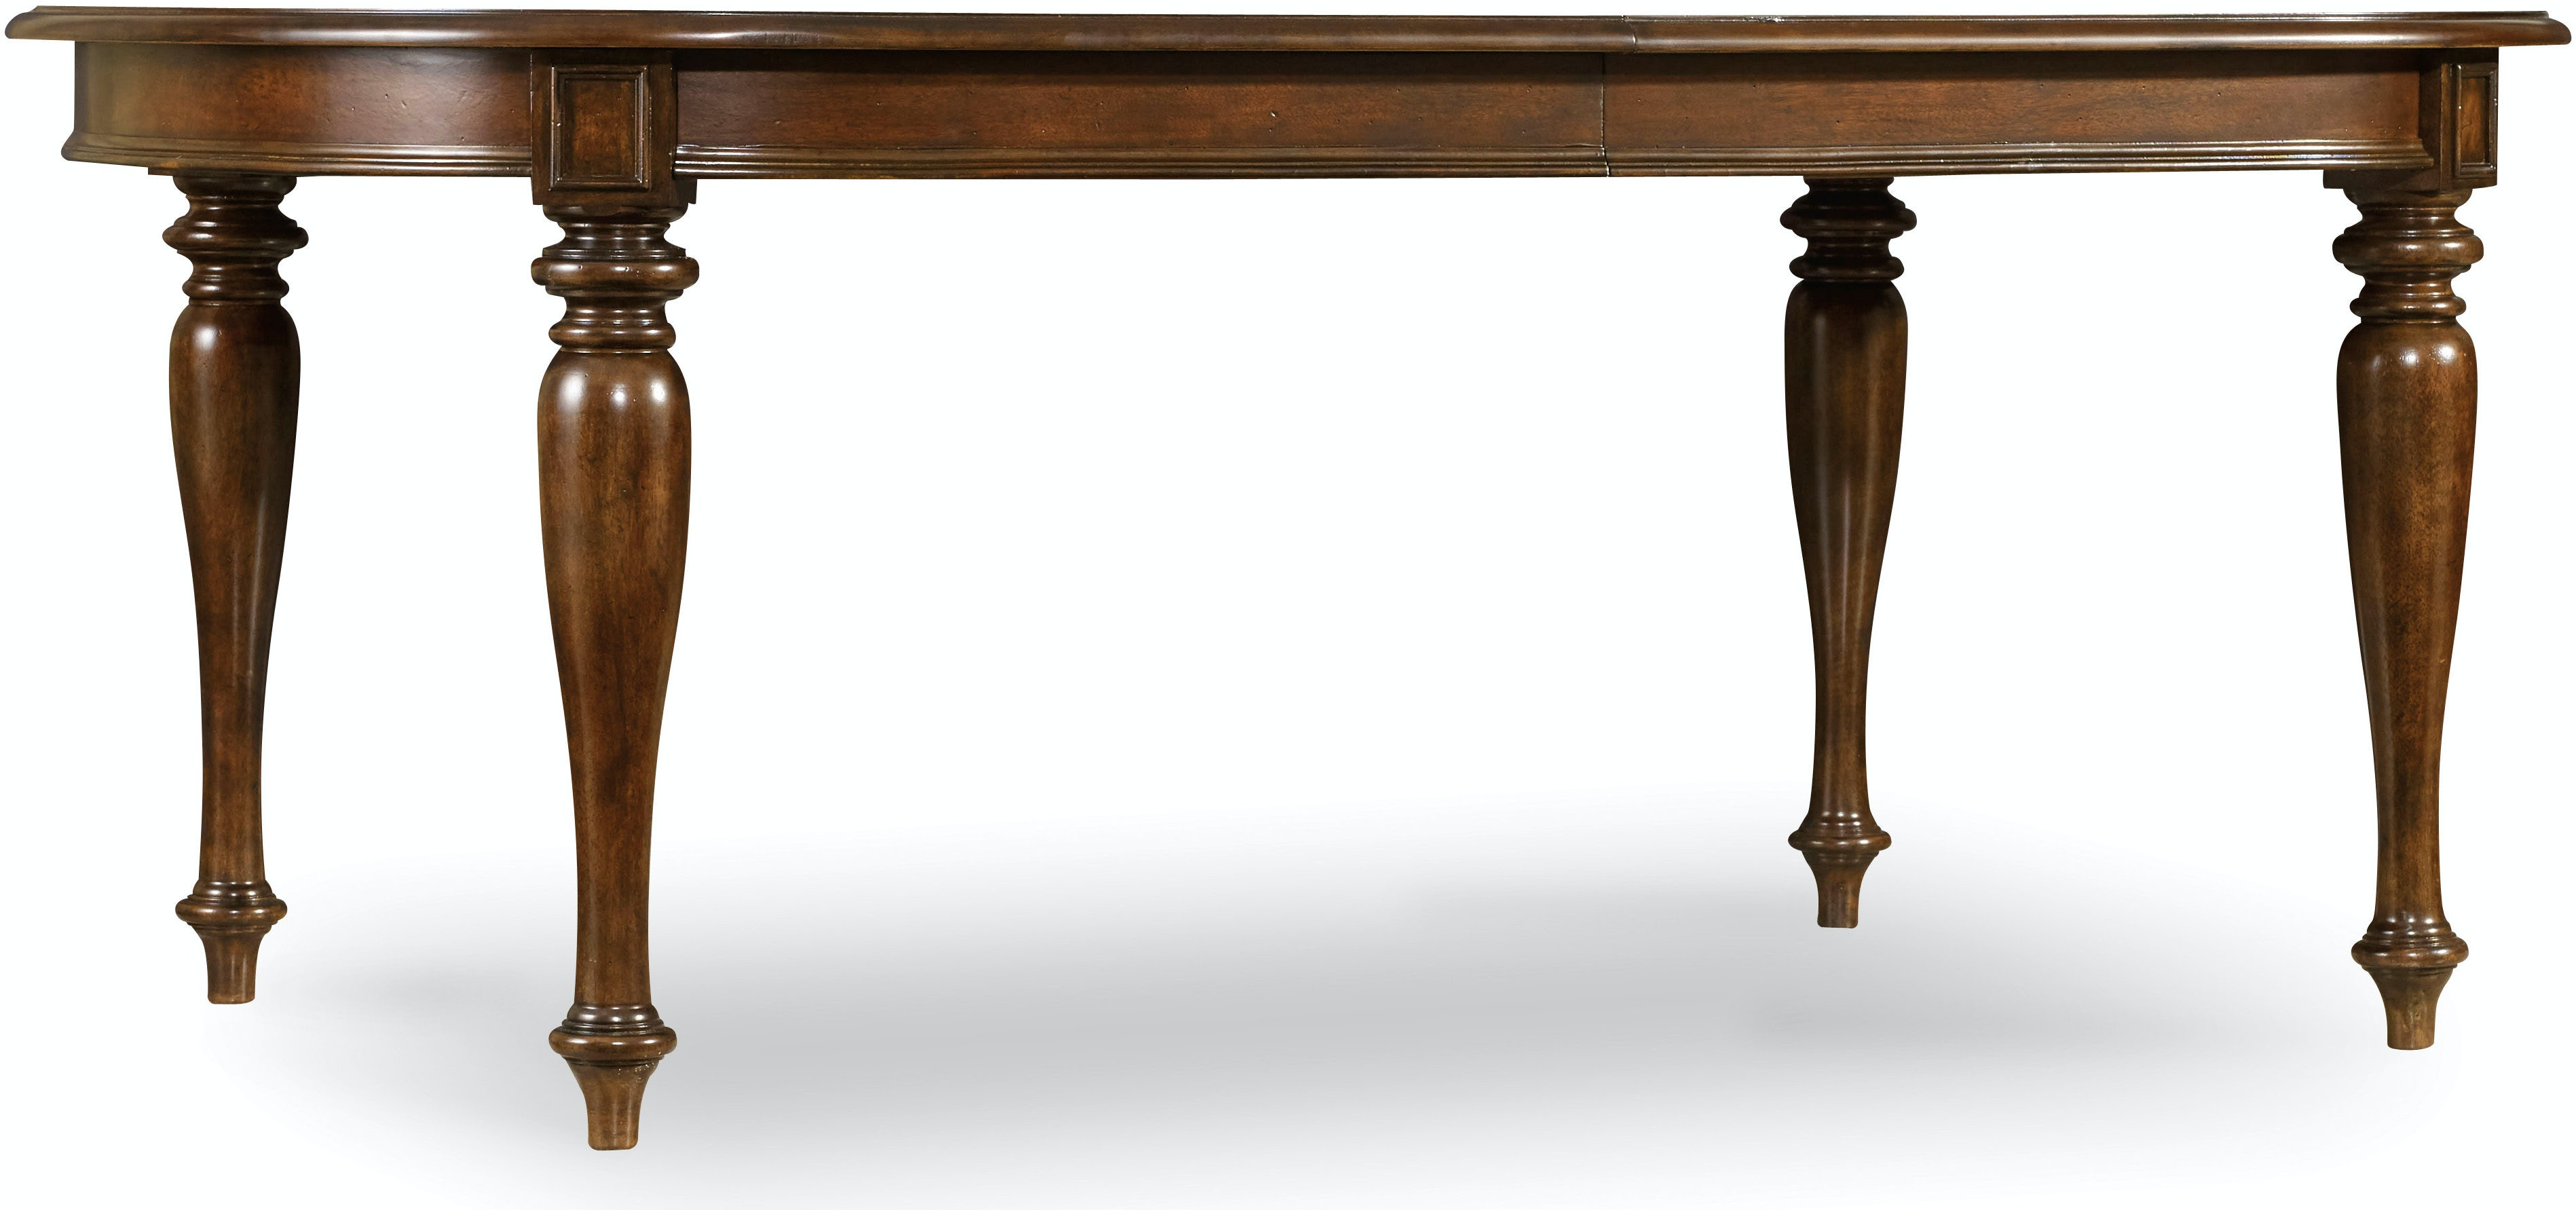 Hooker Furniture Dining Room Leesburg Leg Table With Two